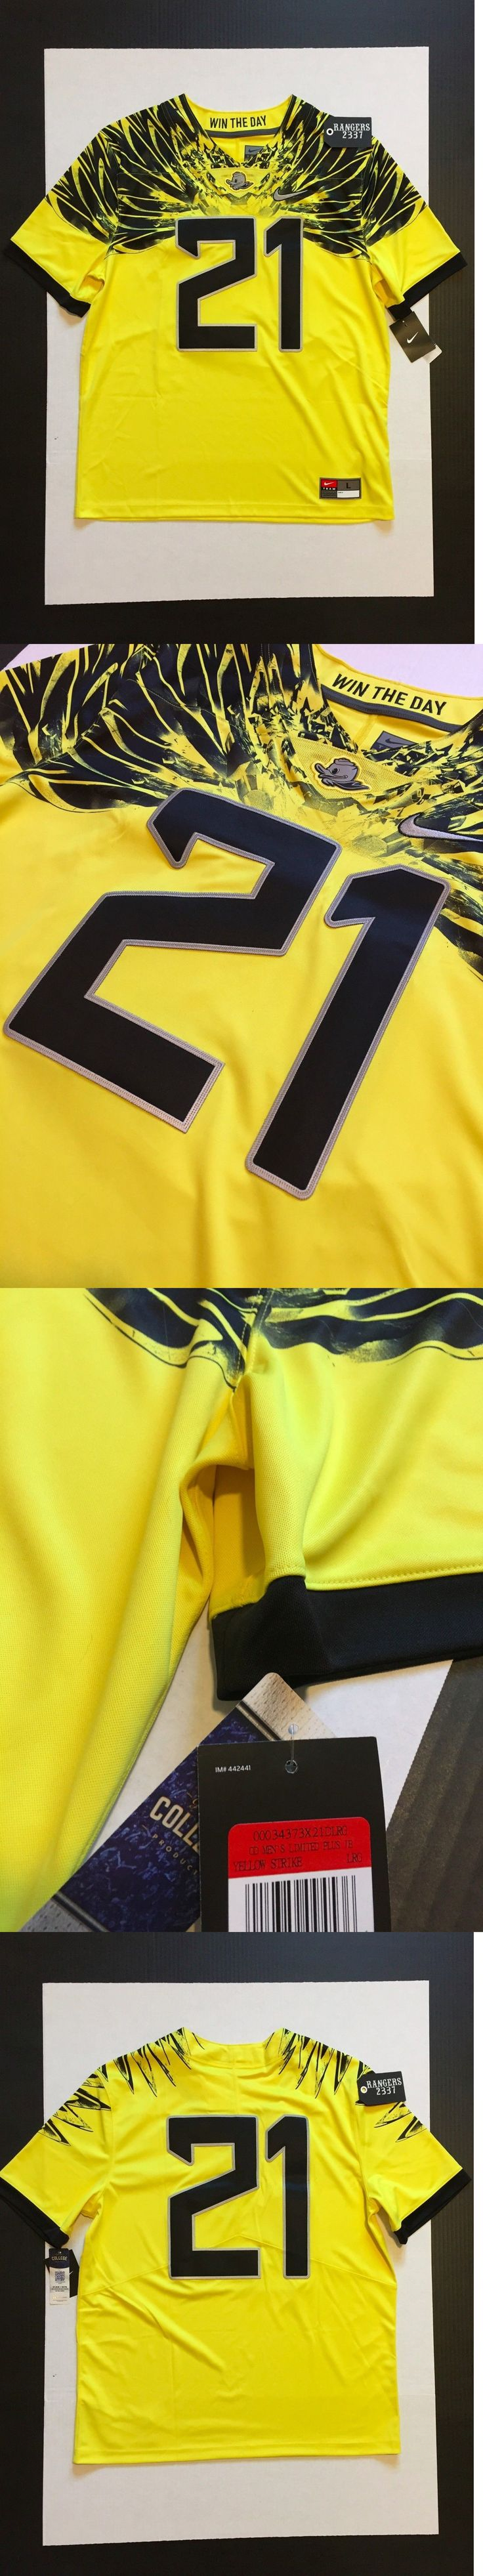 College-NCAA 24541: Nike Oregon Ducks Limited Plus Game Jersey #21 Football Yellow Strike Mens Sz L -> BUY IT NOW ONLY: $67.5 on eBay!